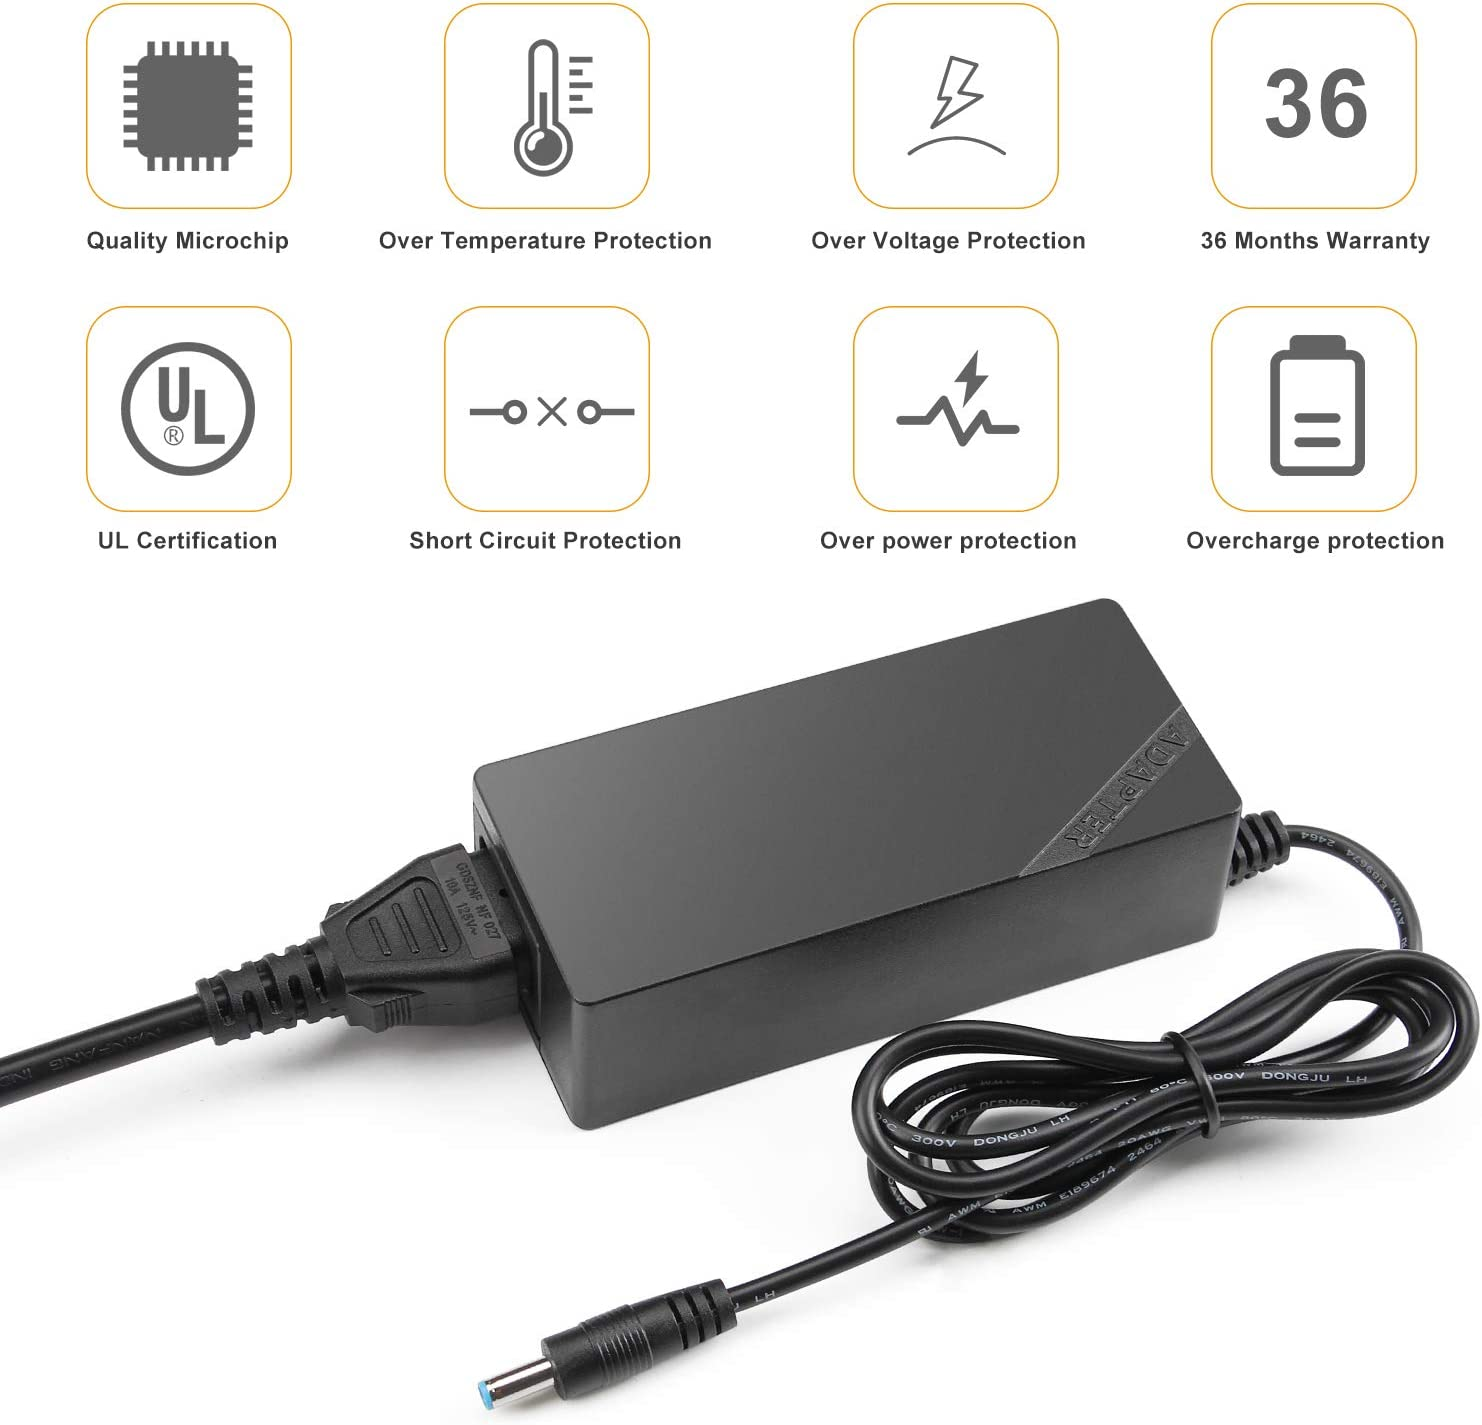 Slim Charger for Dell Inspiron 15-5000 15-3000 13-7000 15-7000 17-5000 17-7000 11-3000 13-5000 14-3000 14-5000 Series 5559 5558 5755 5758 5378 Power Supply Cord Laptop Charger 45W AC Power Adapter